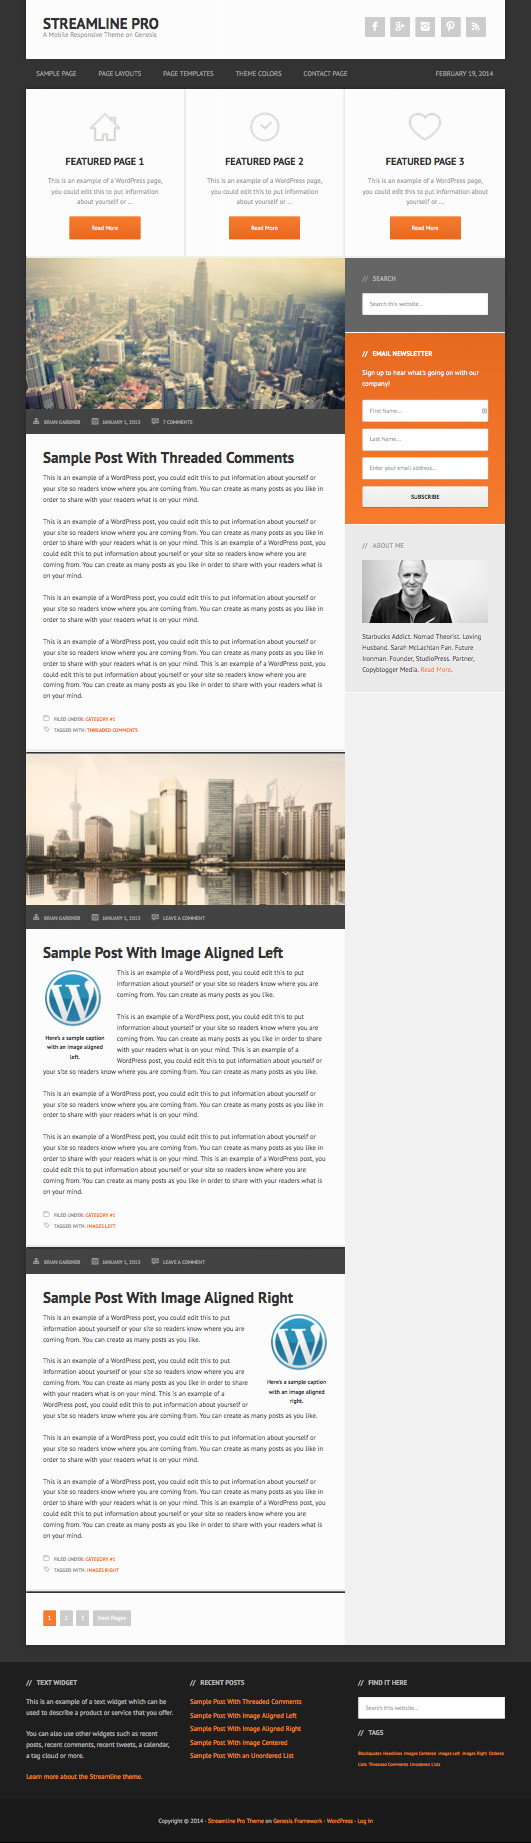 Streamline Pro Newspaper Theme – Wpchats.com